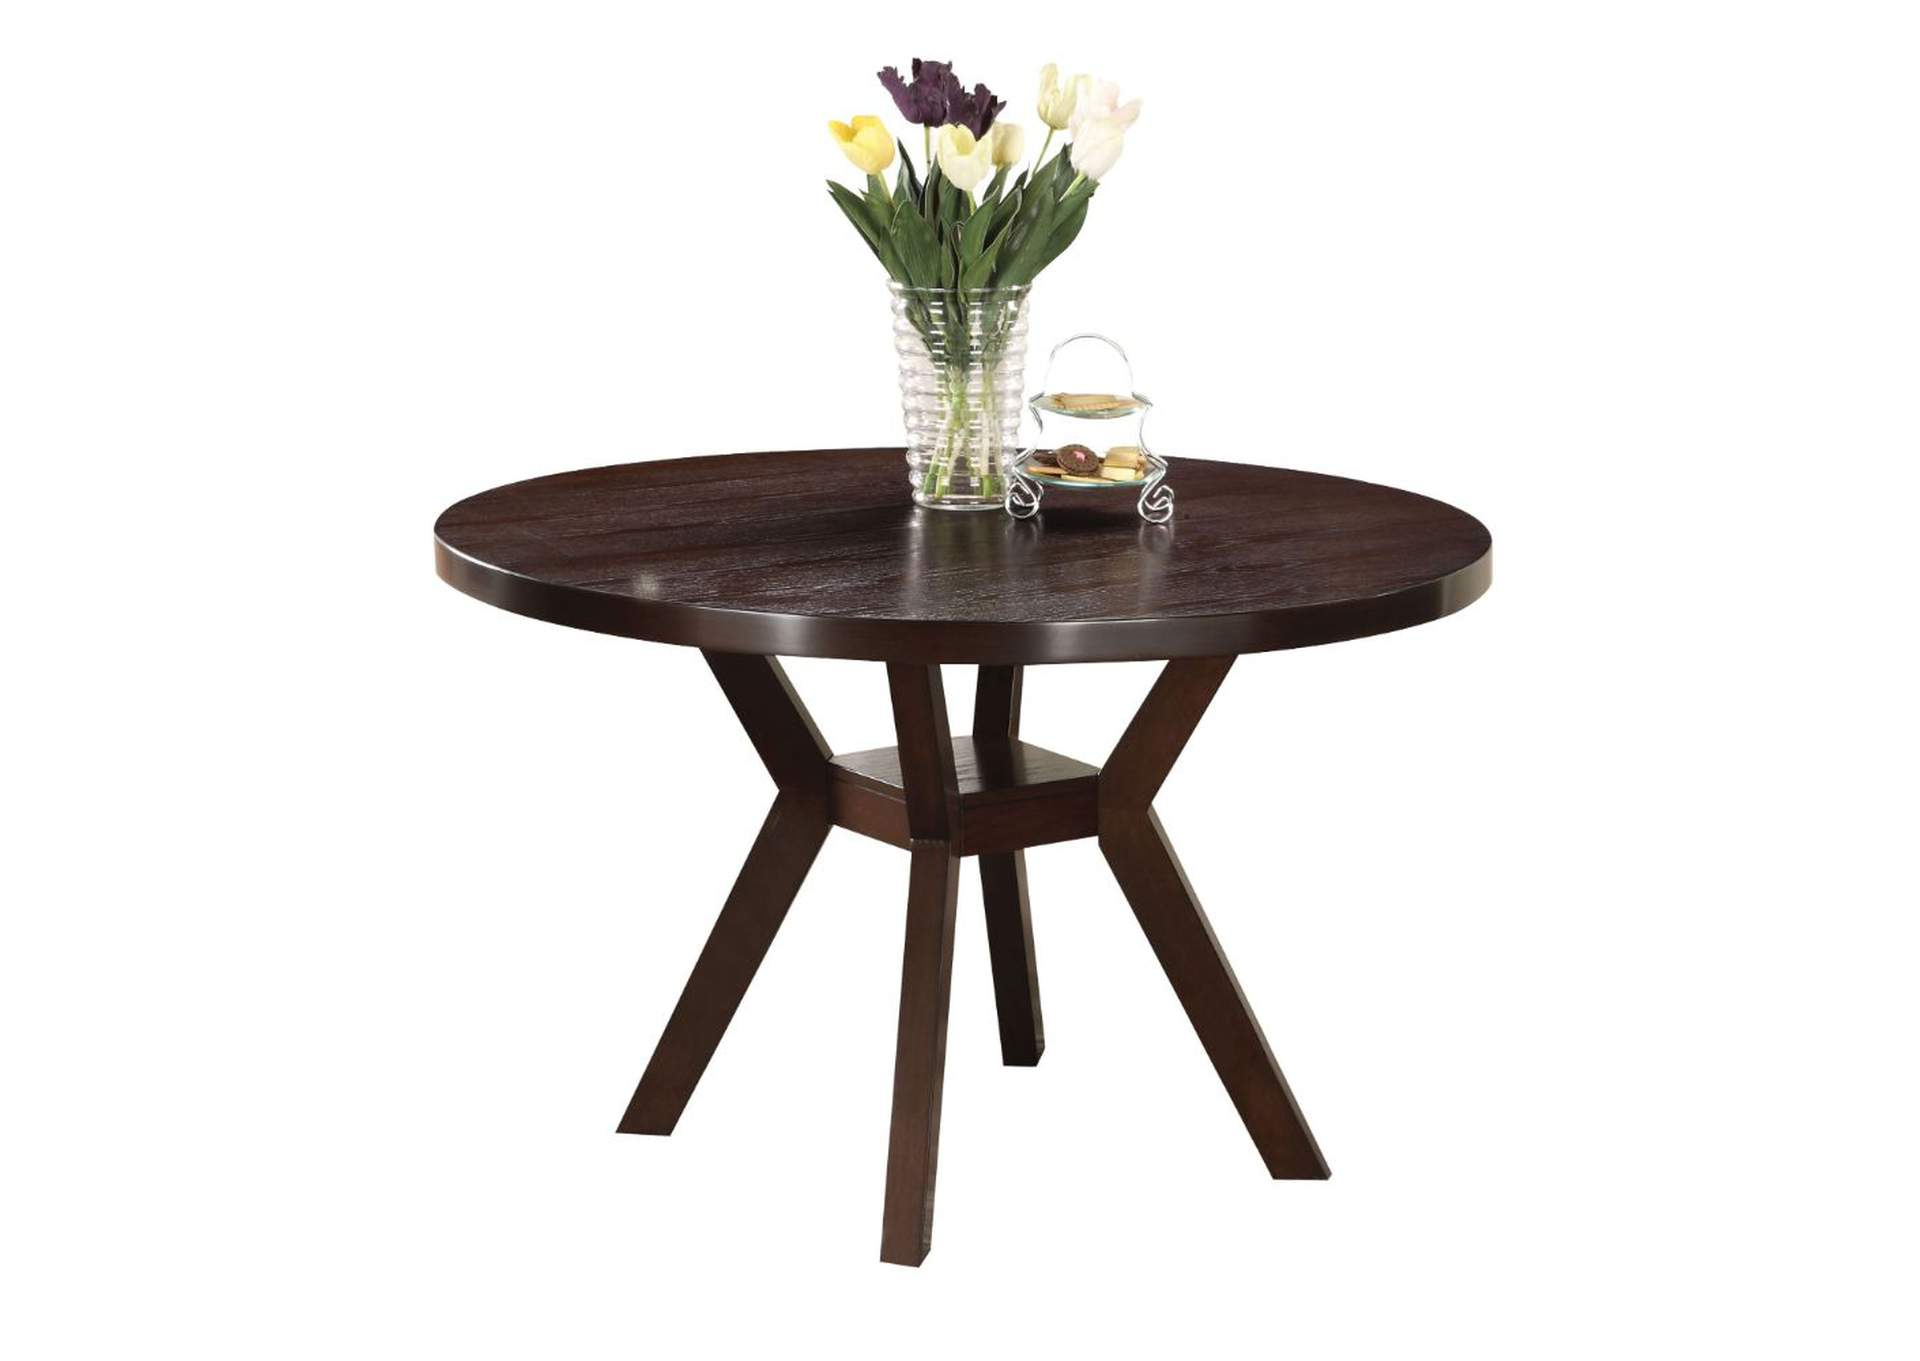 Drake Espresso Round Dining Table,Acme